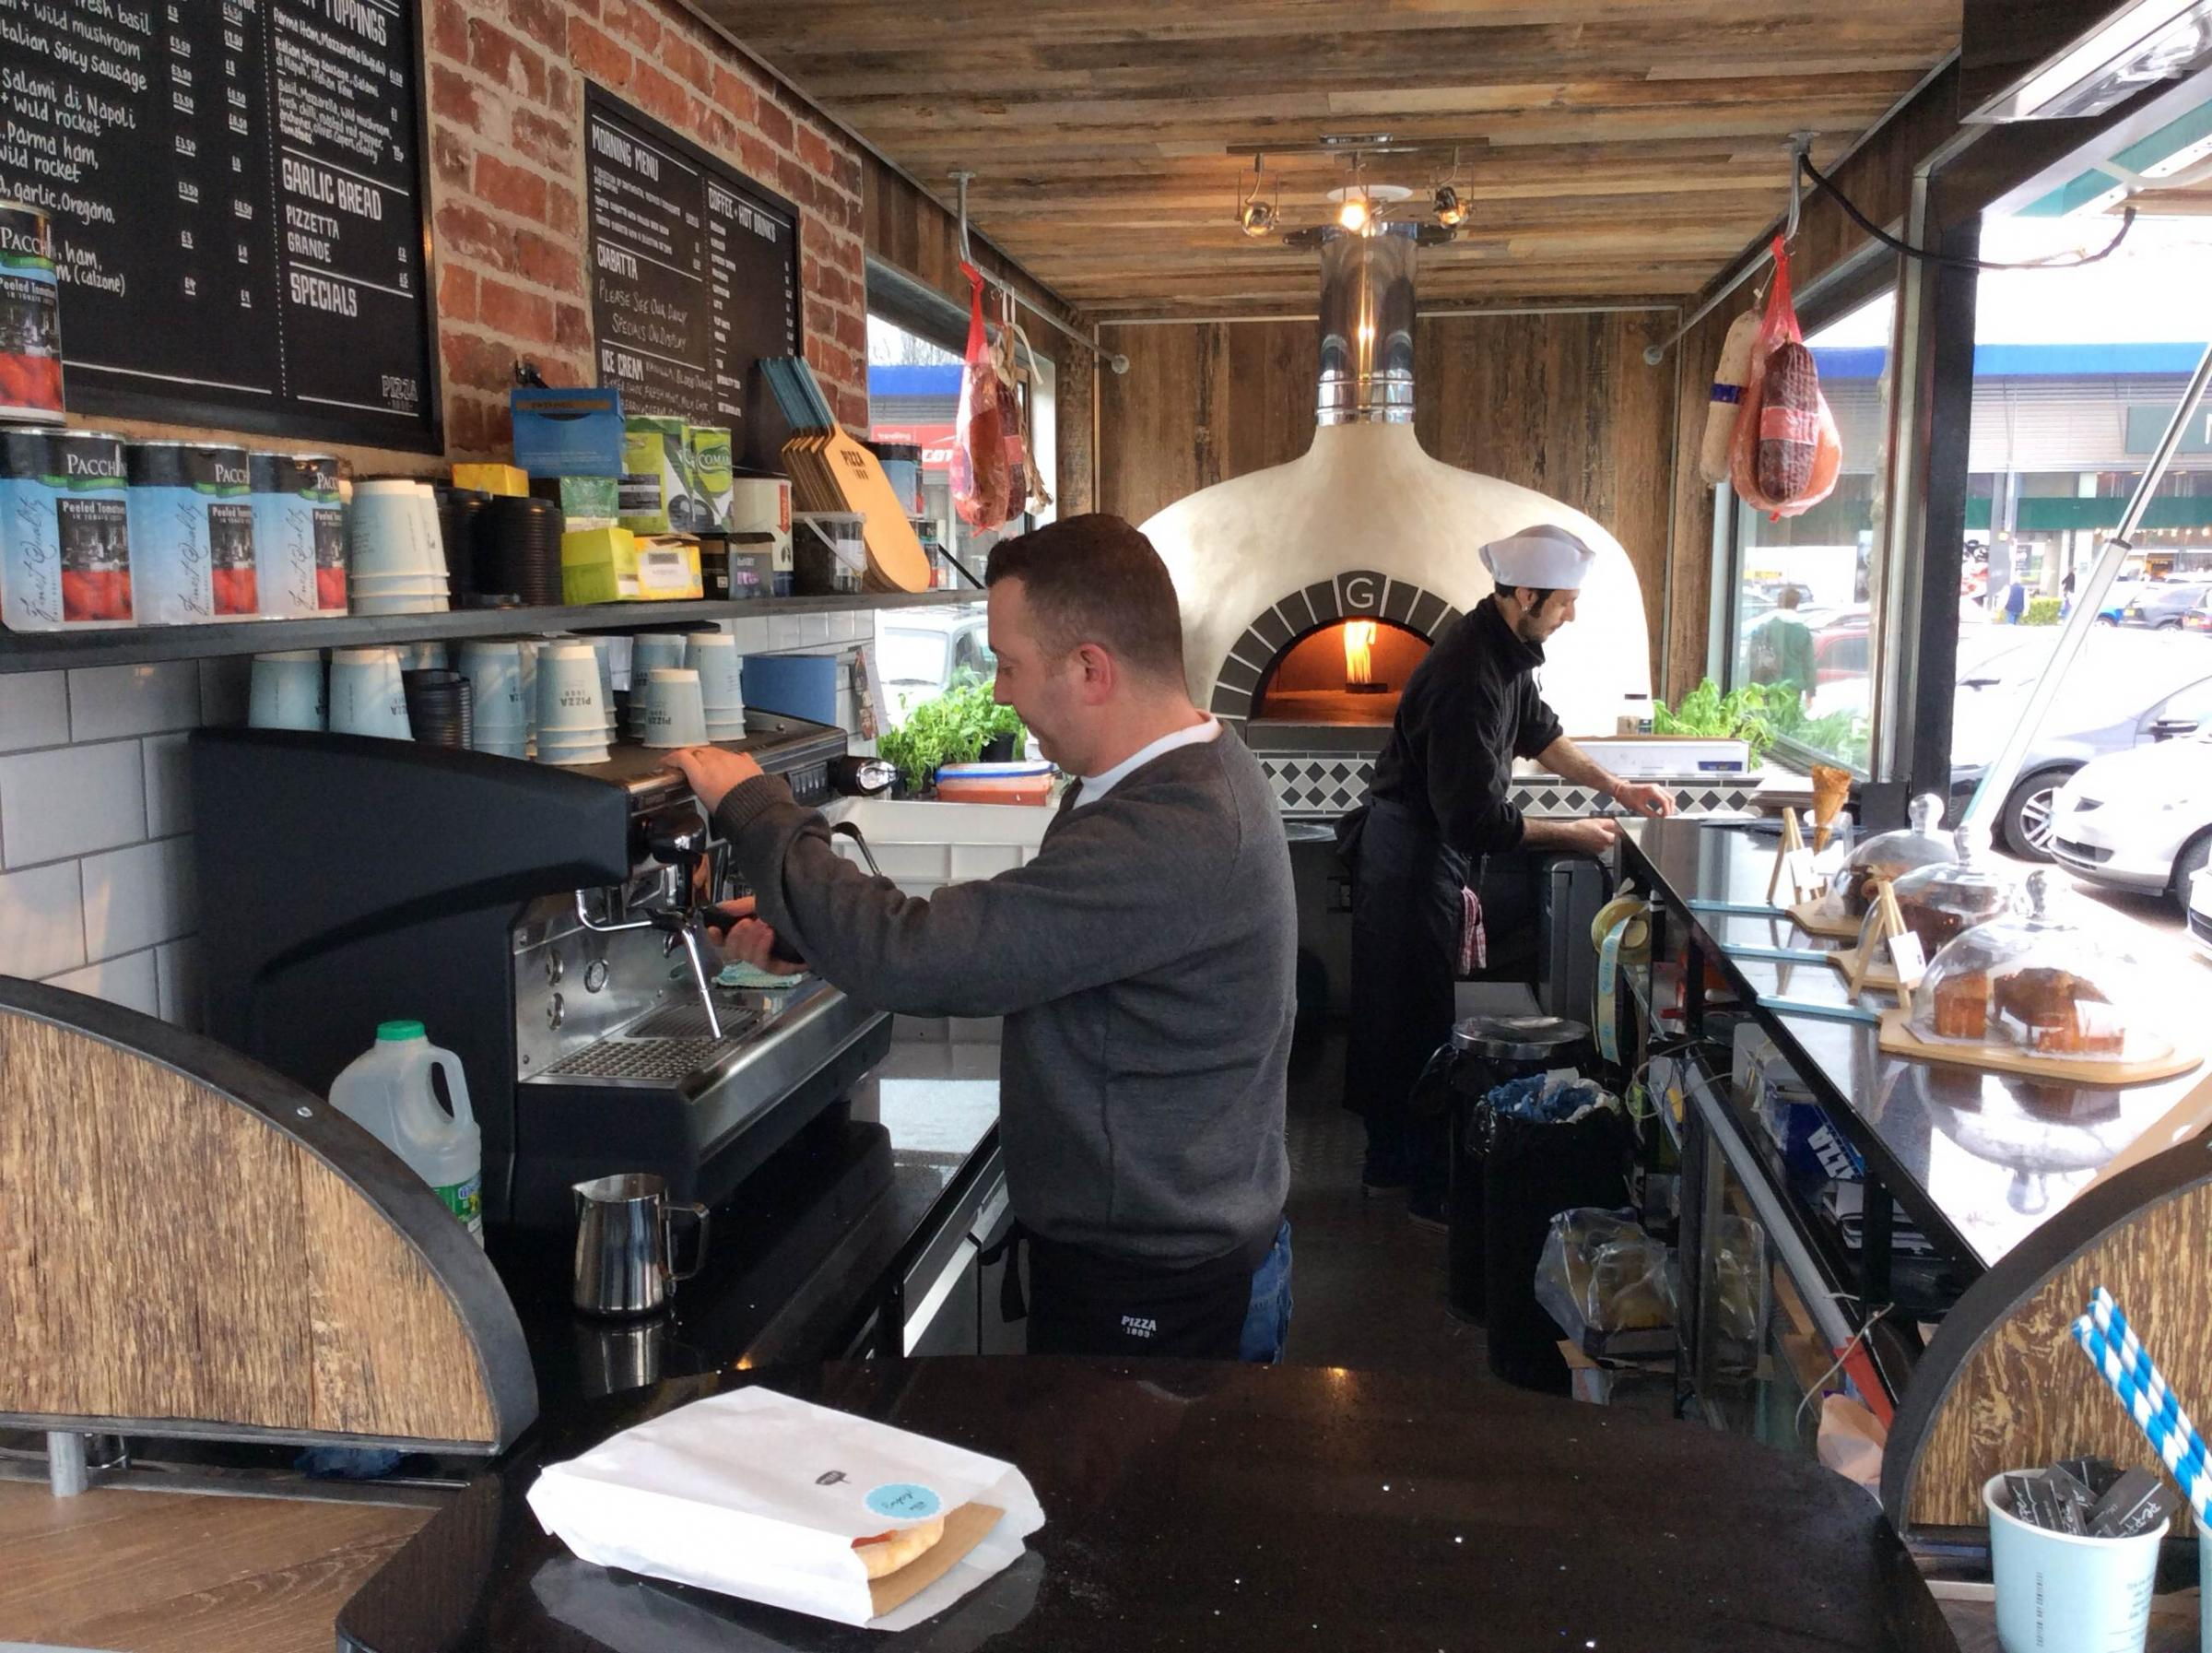 Contain yourselves: Pizza1889 transports authentic Italian pizza to Orpington